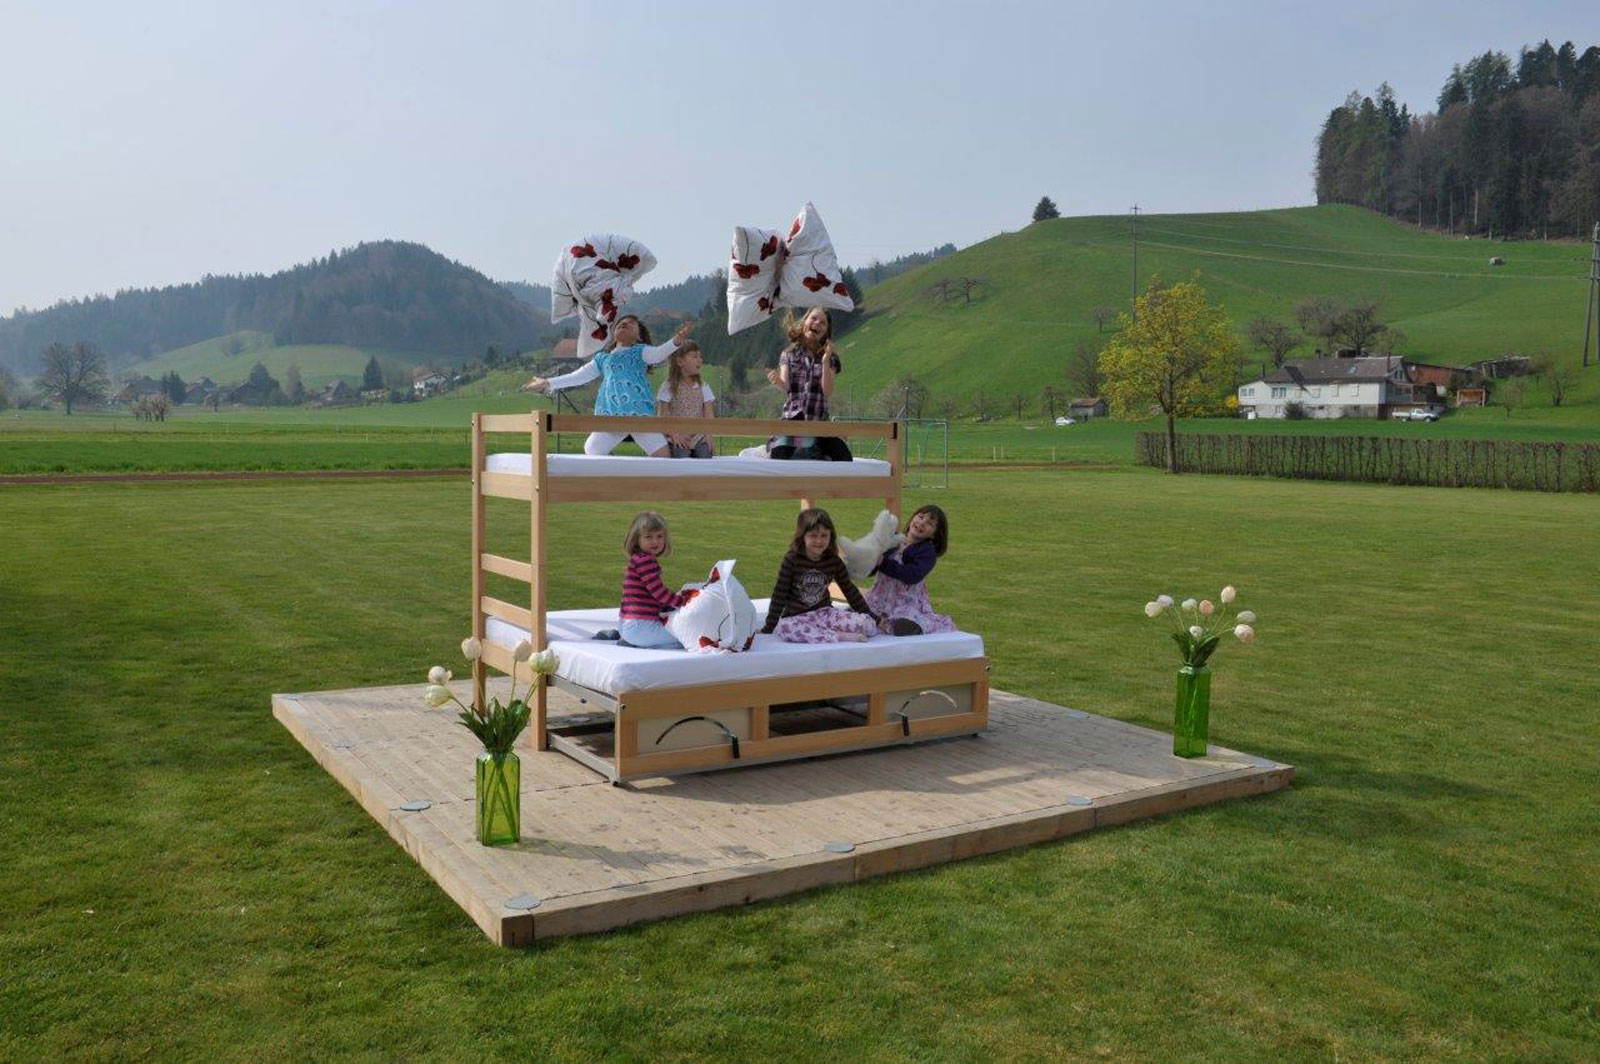 Extendable beds by ZAHO, Swiss